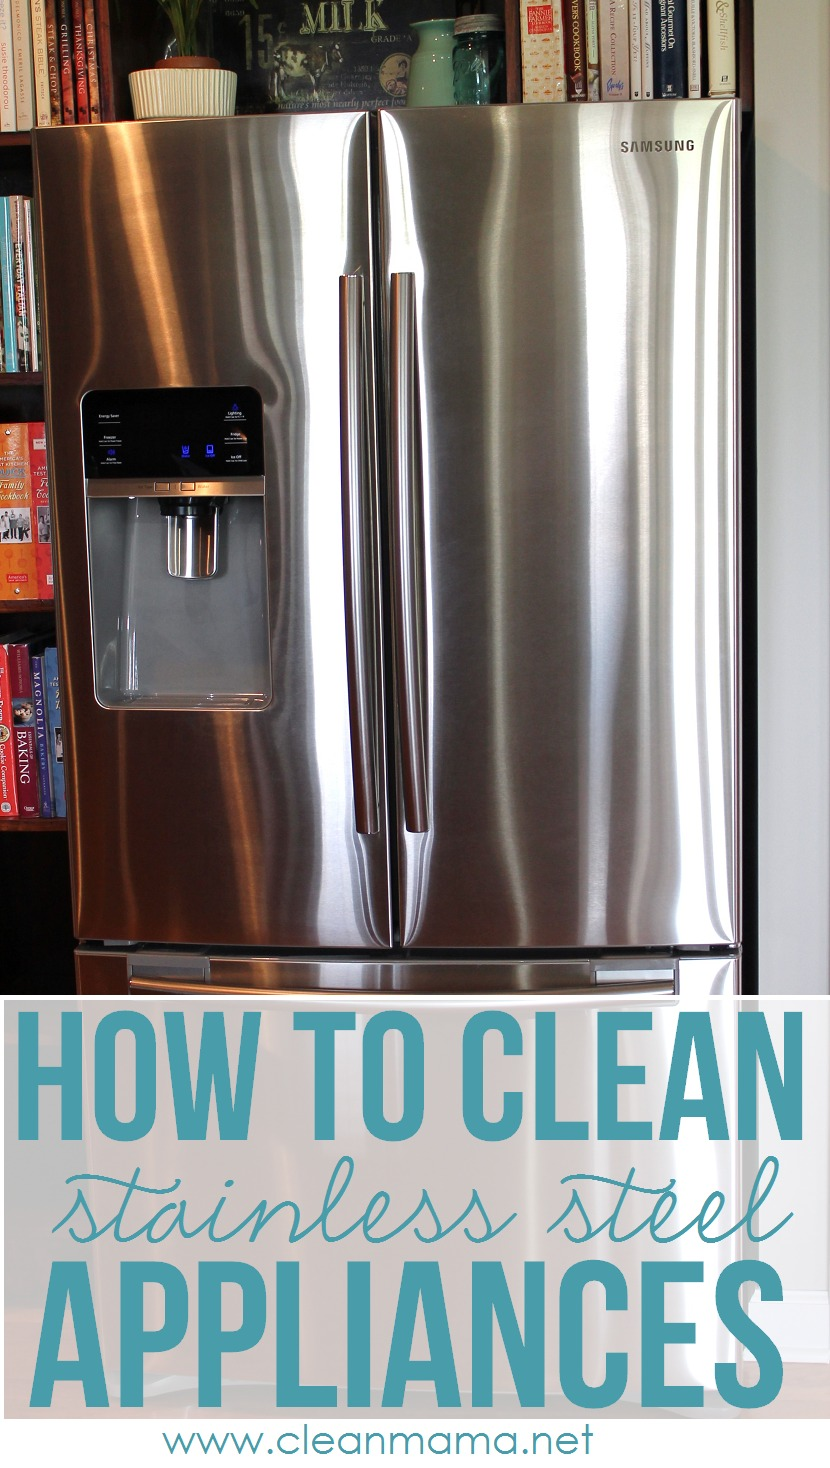 awesome Best Stainless Steel Cleaner For Kitchen Appliances #1: how to clean stainless steel appliances - clean mama